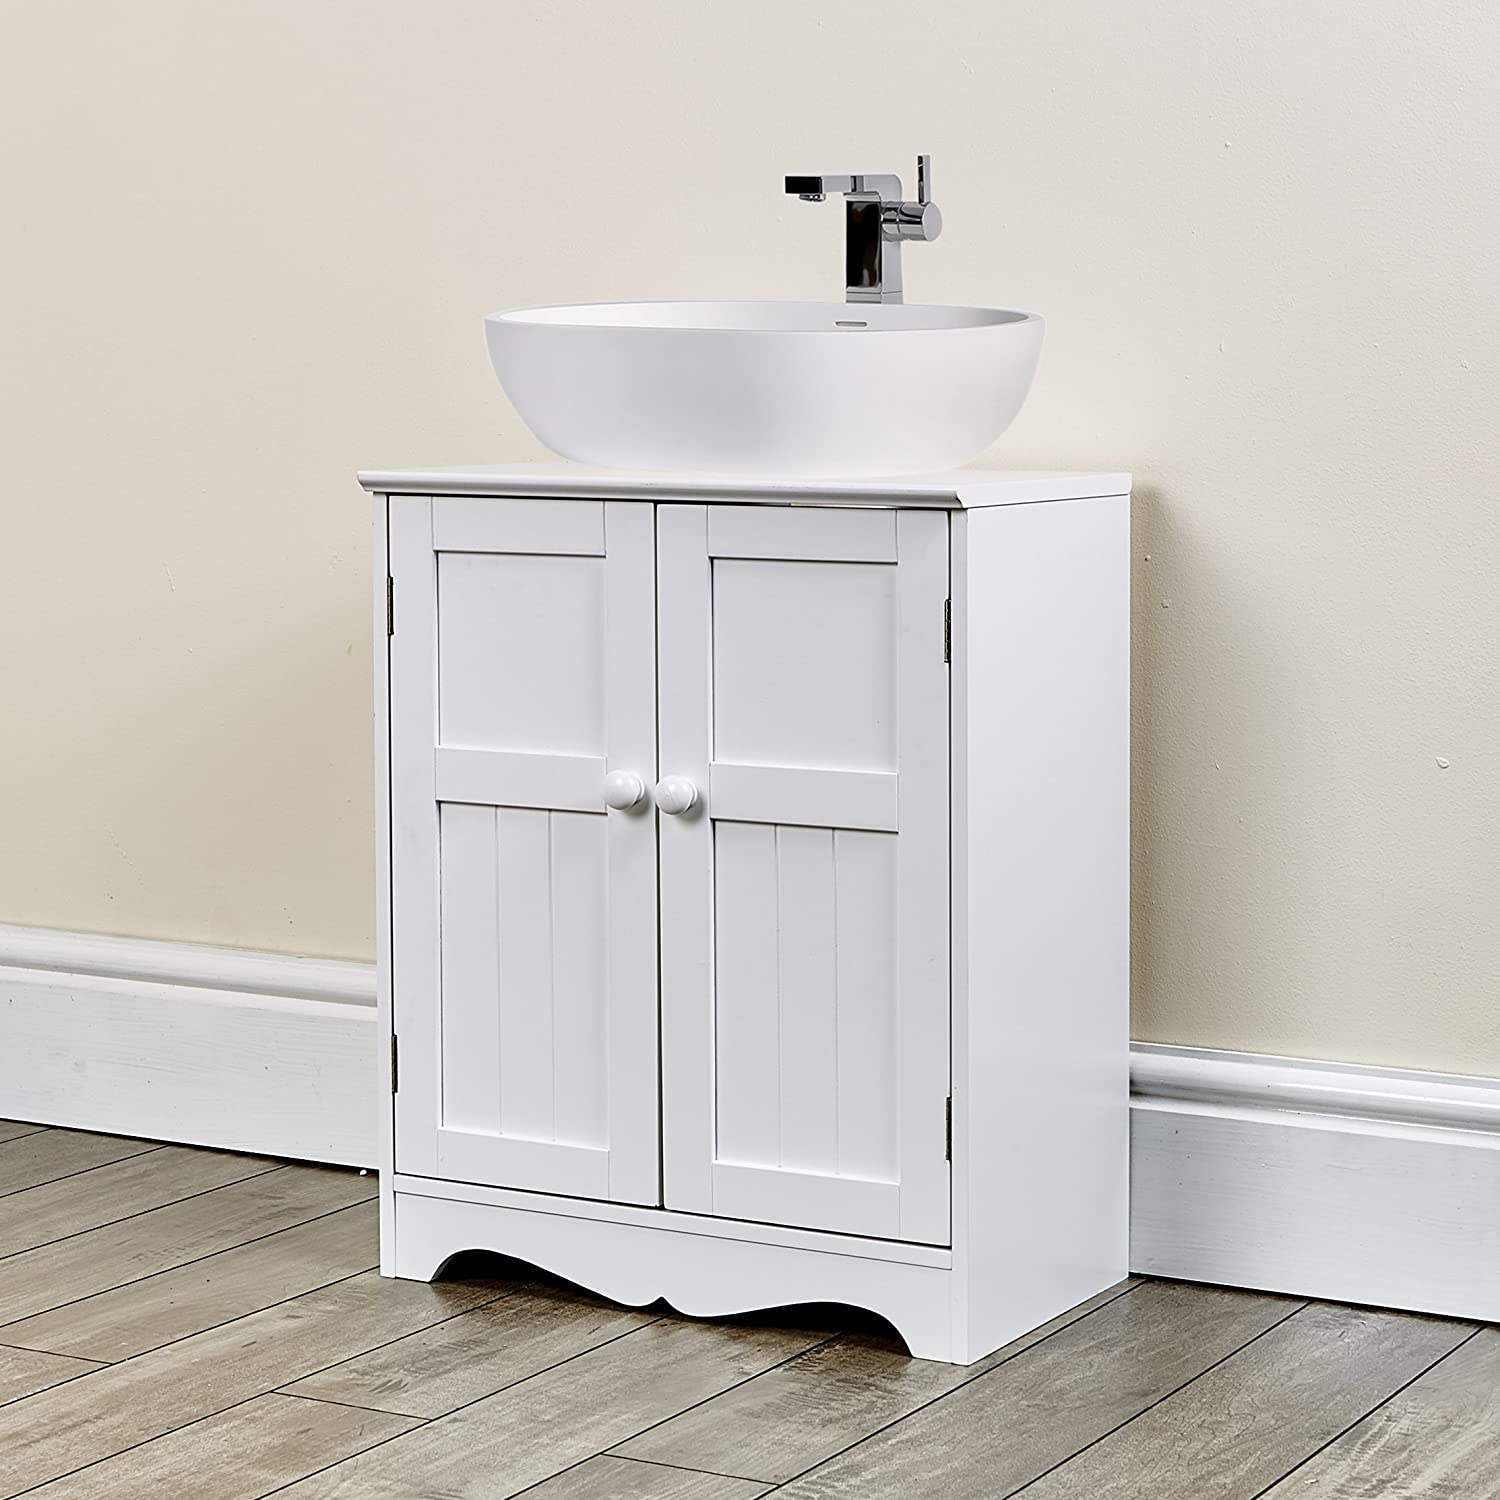 Abreo New White Under Sink Cupboard Bathroom Furniture Storage ...